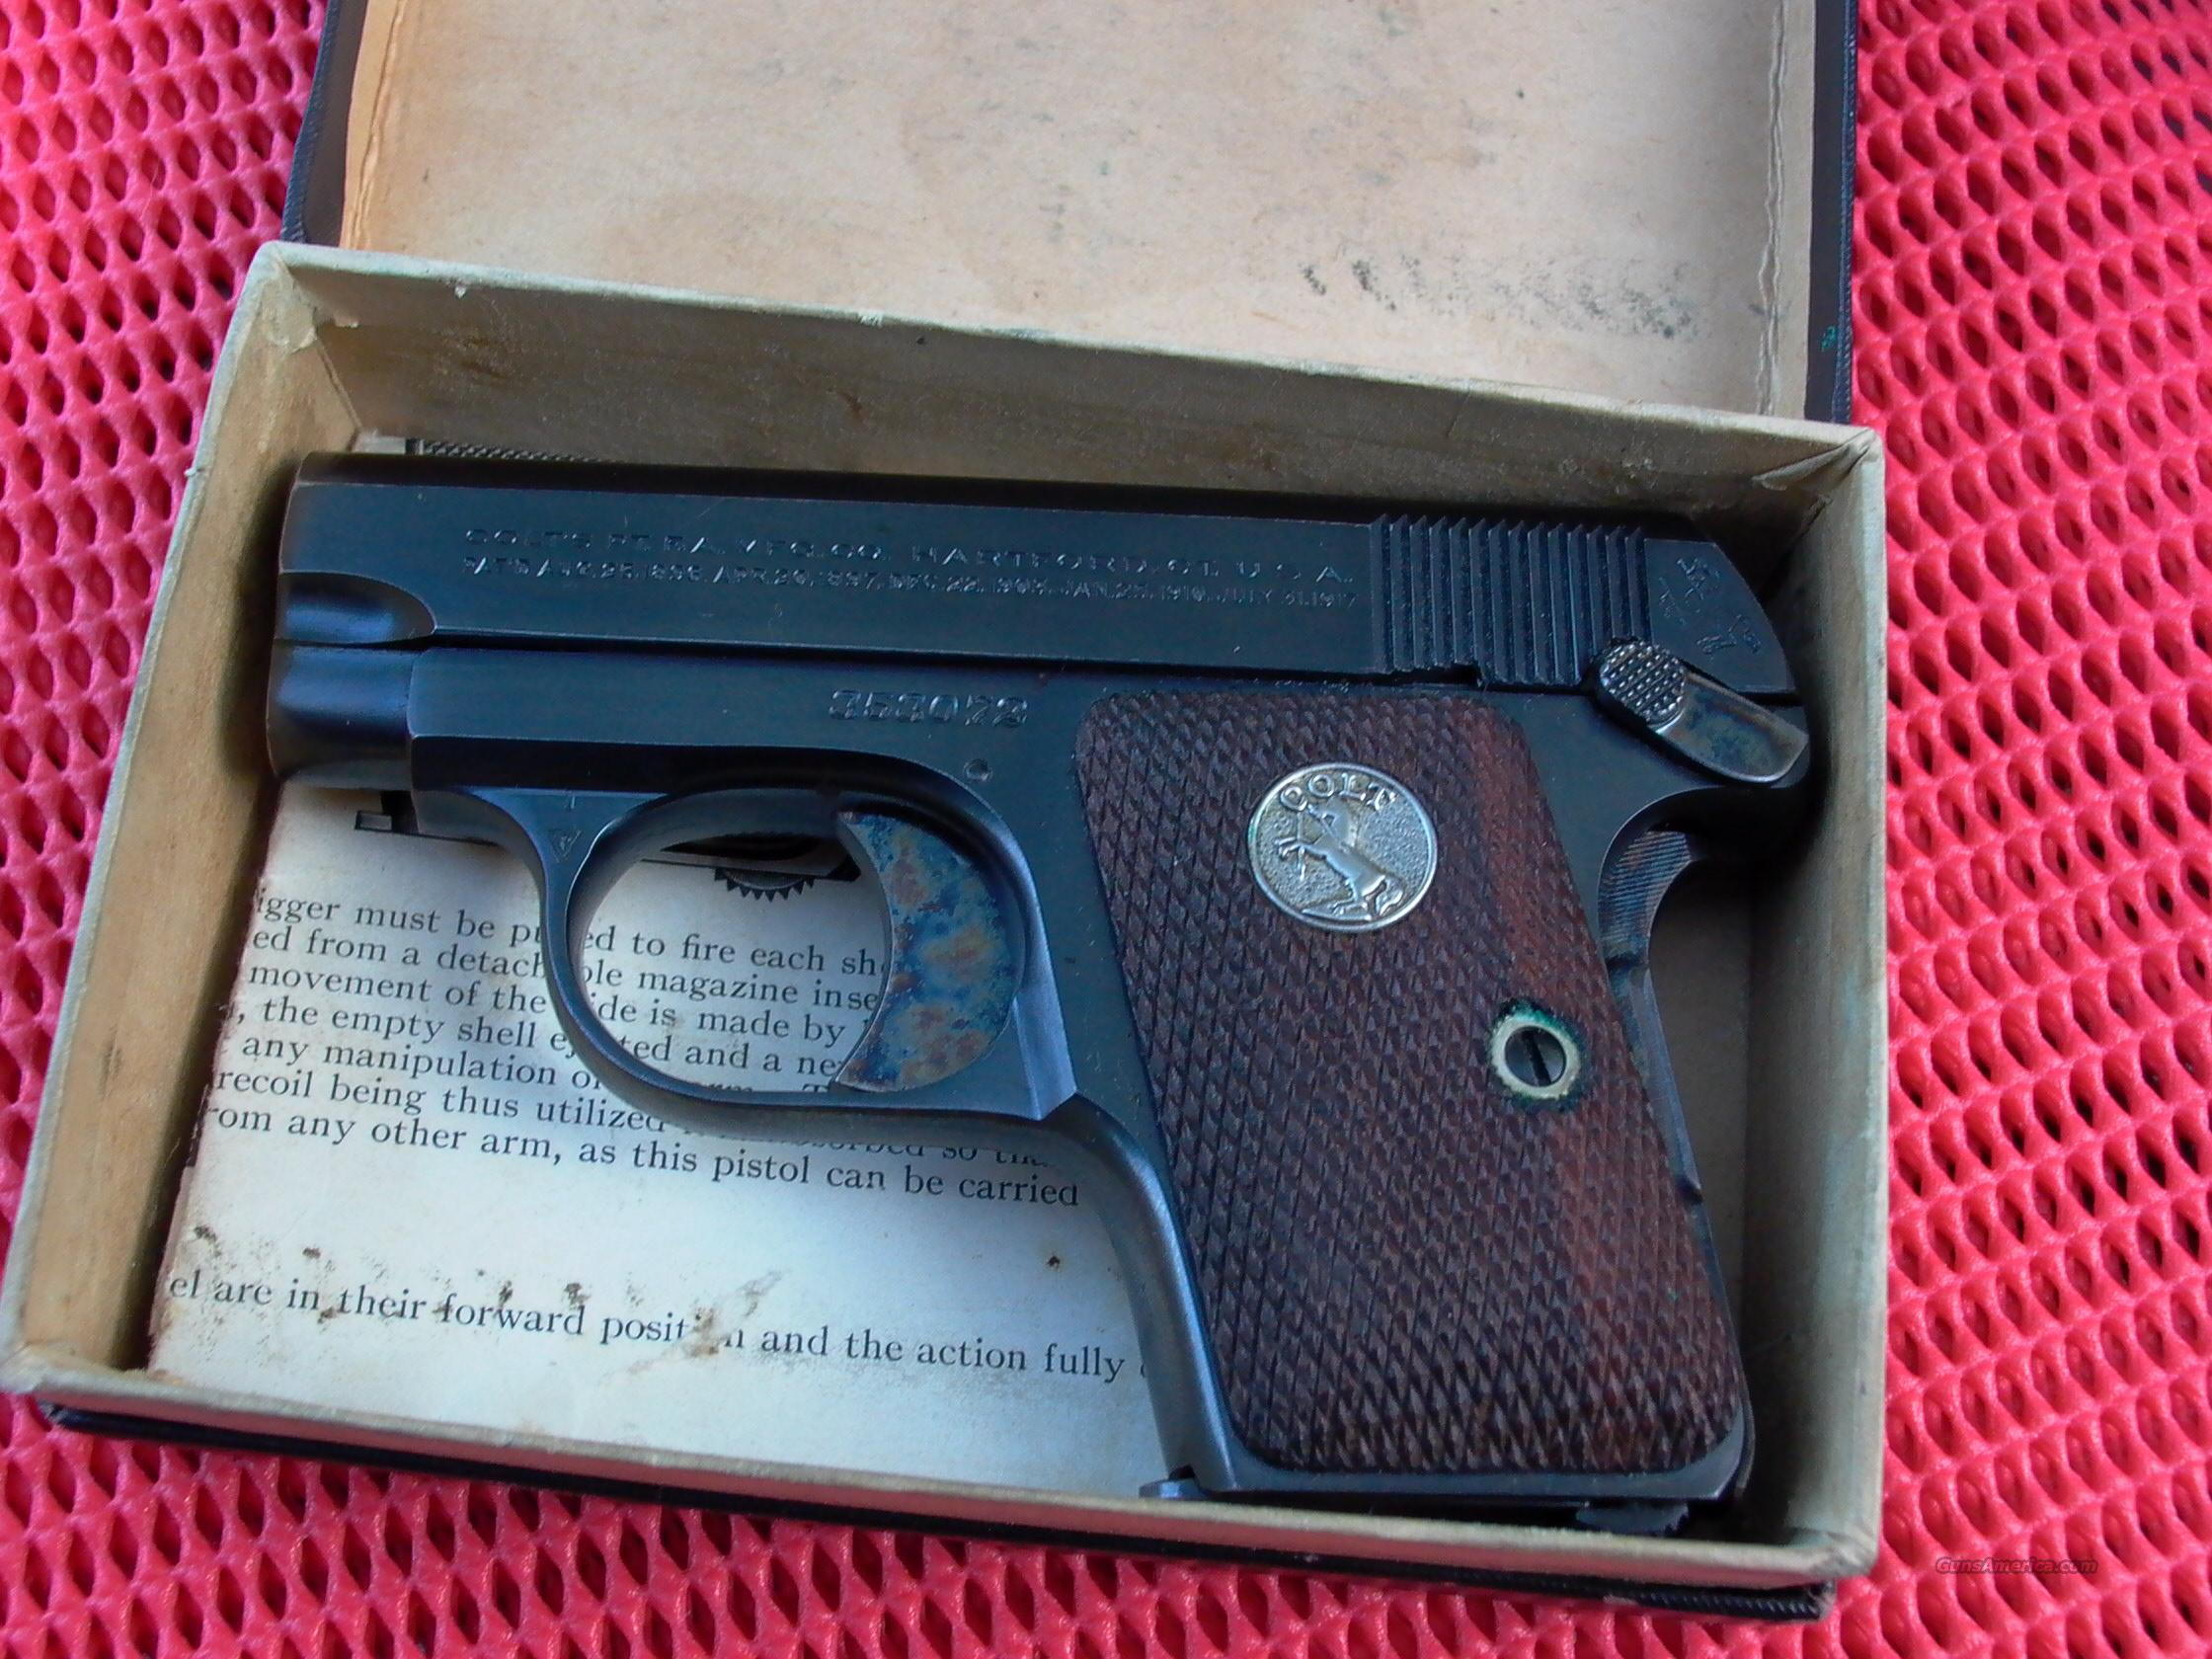 COLT 1908 25 ACP UNFIRED IN BOX MADE 1926  Guns > Pistols > Colt Automatic Pistols (.25, .32, & .380 cal)